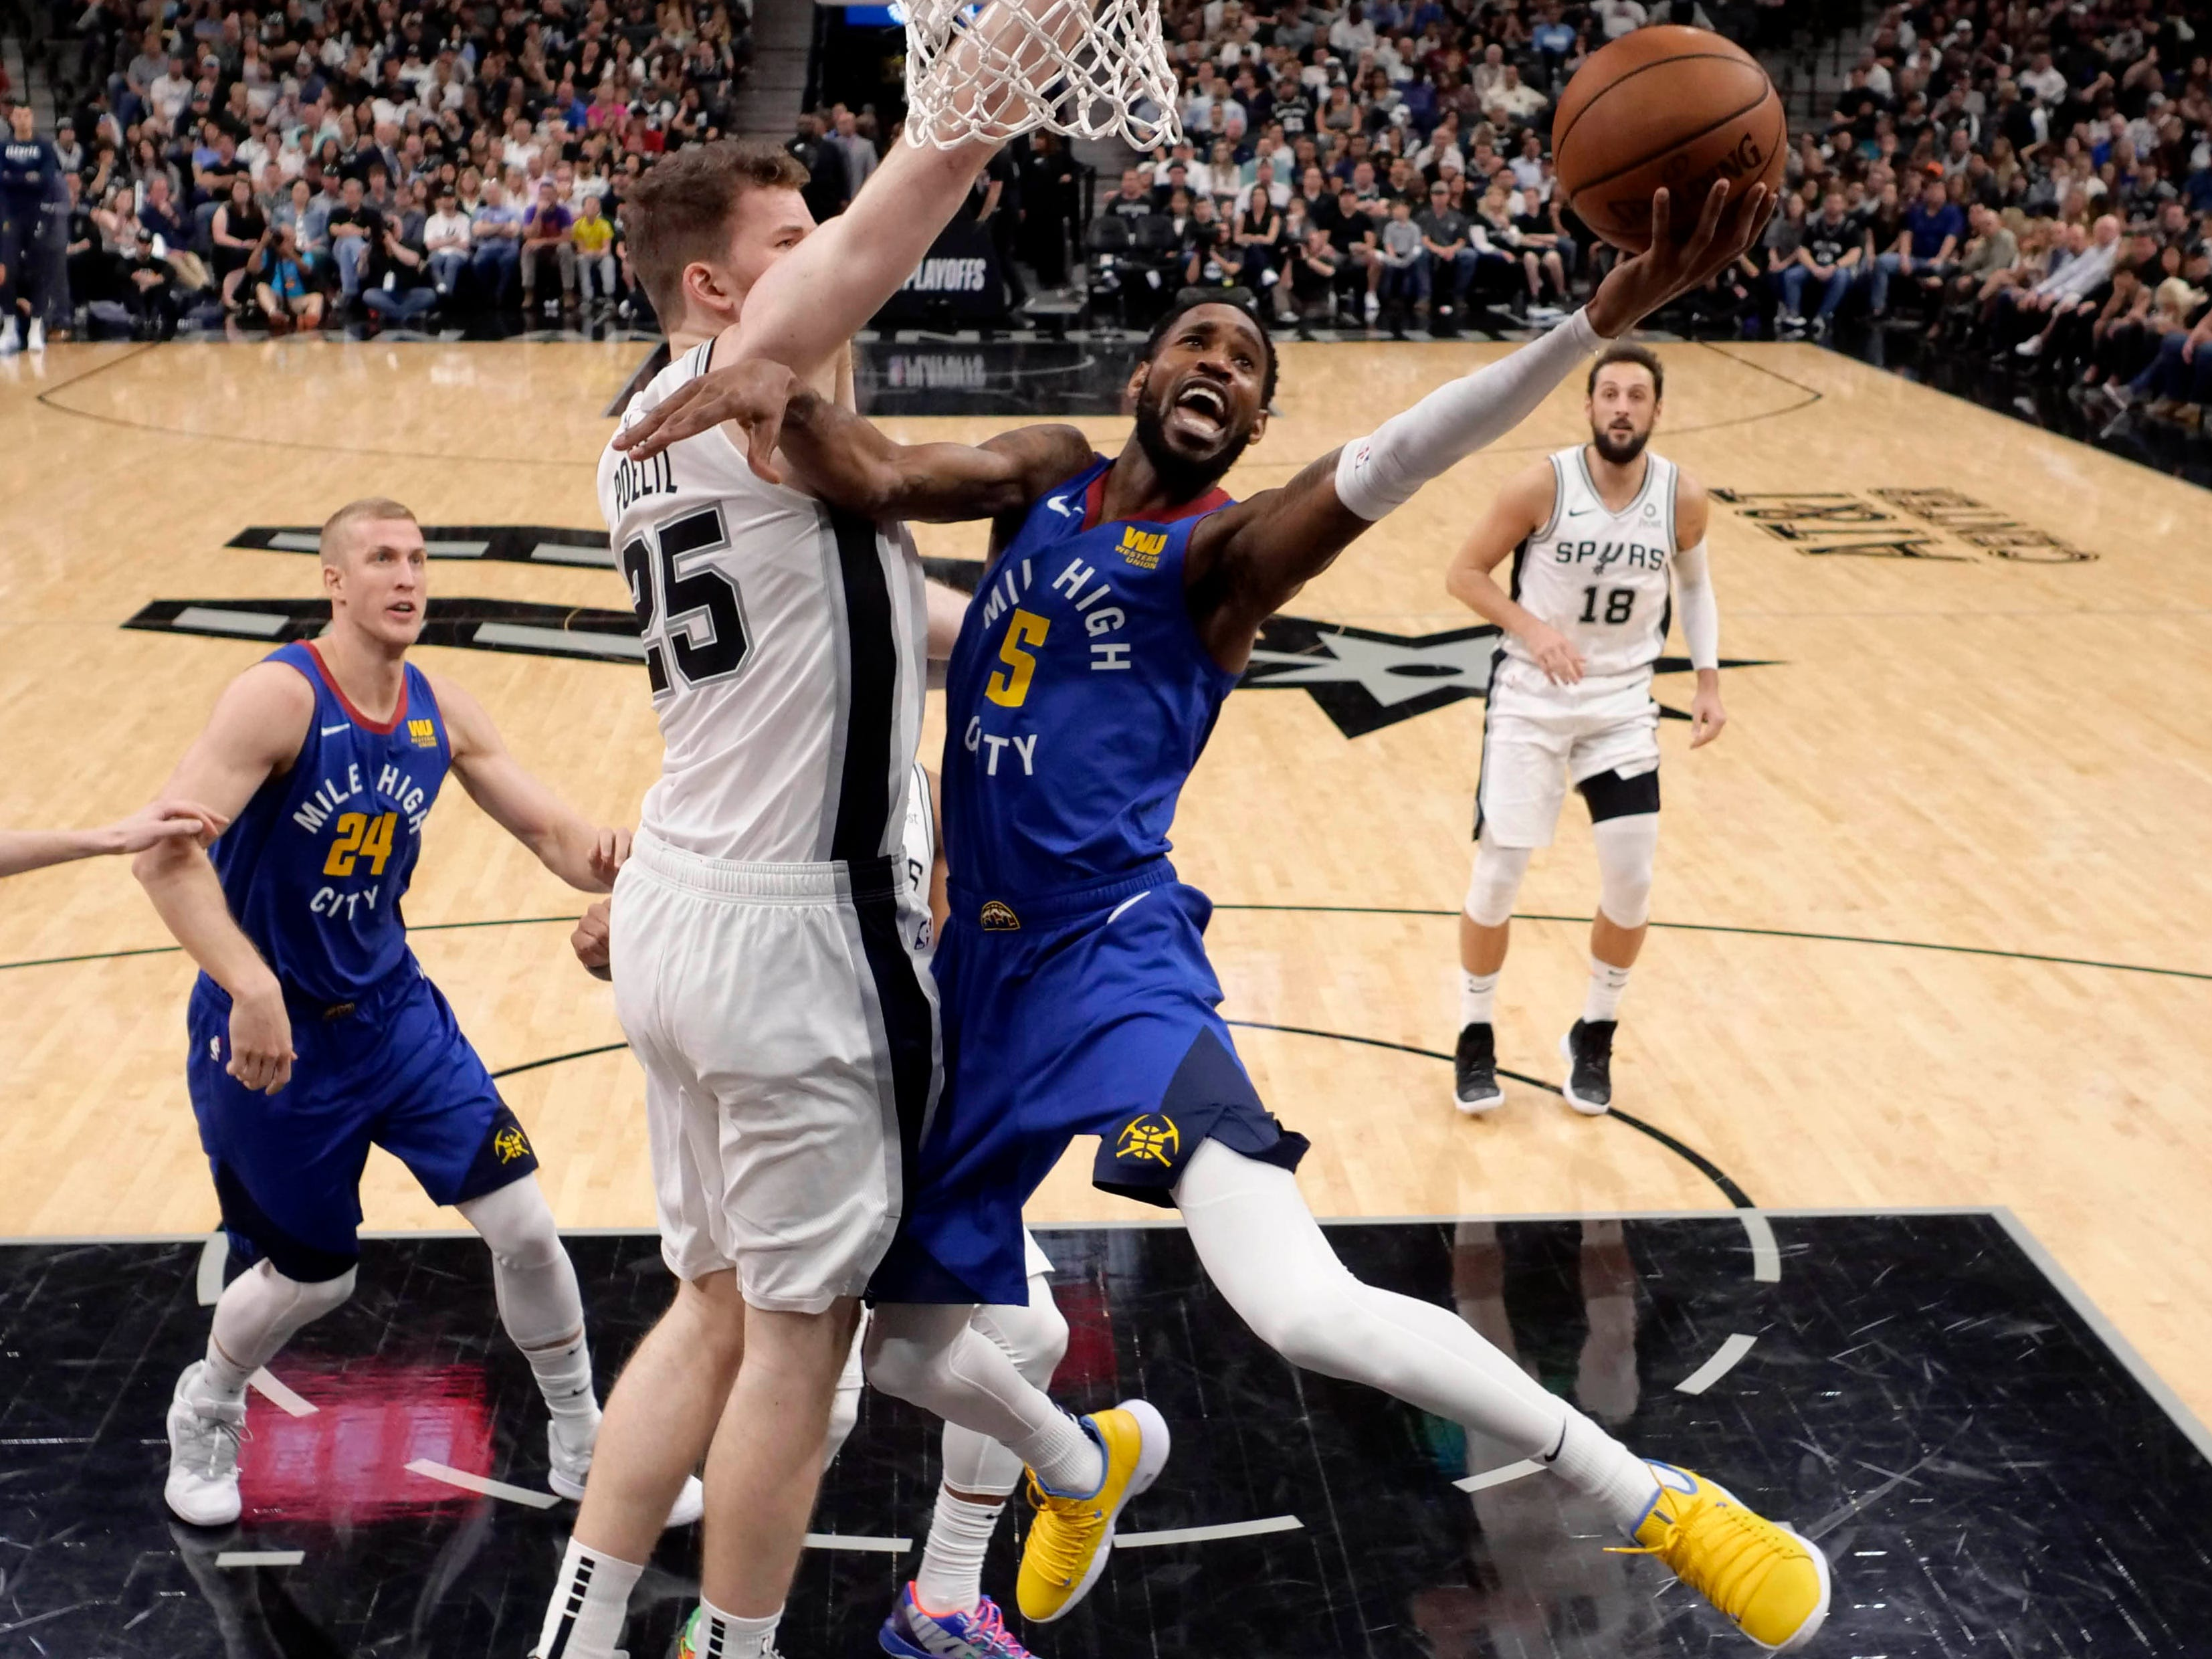 April 20: Nuggets guard Will Barton (5) drives to the bucket against Spurs defender Jakob Poeltl (25) during Game 4 in San Antonio.